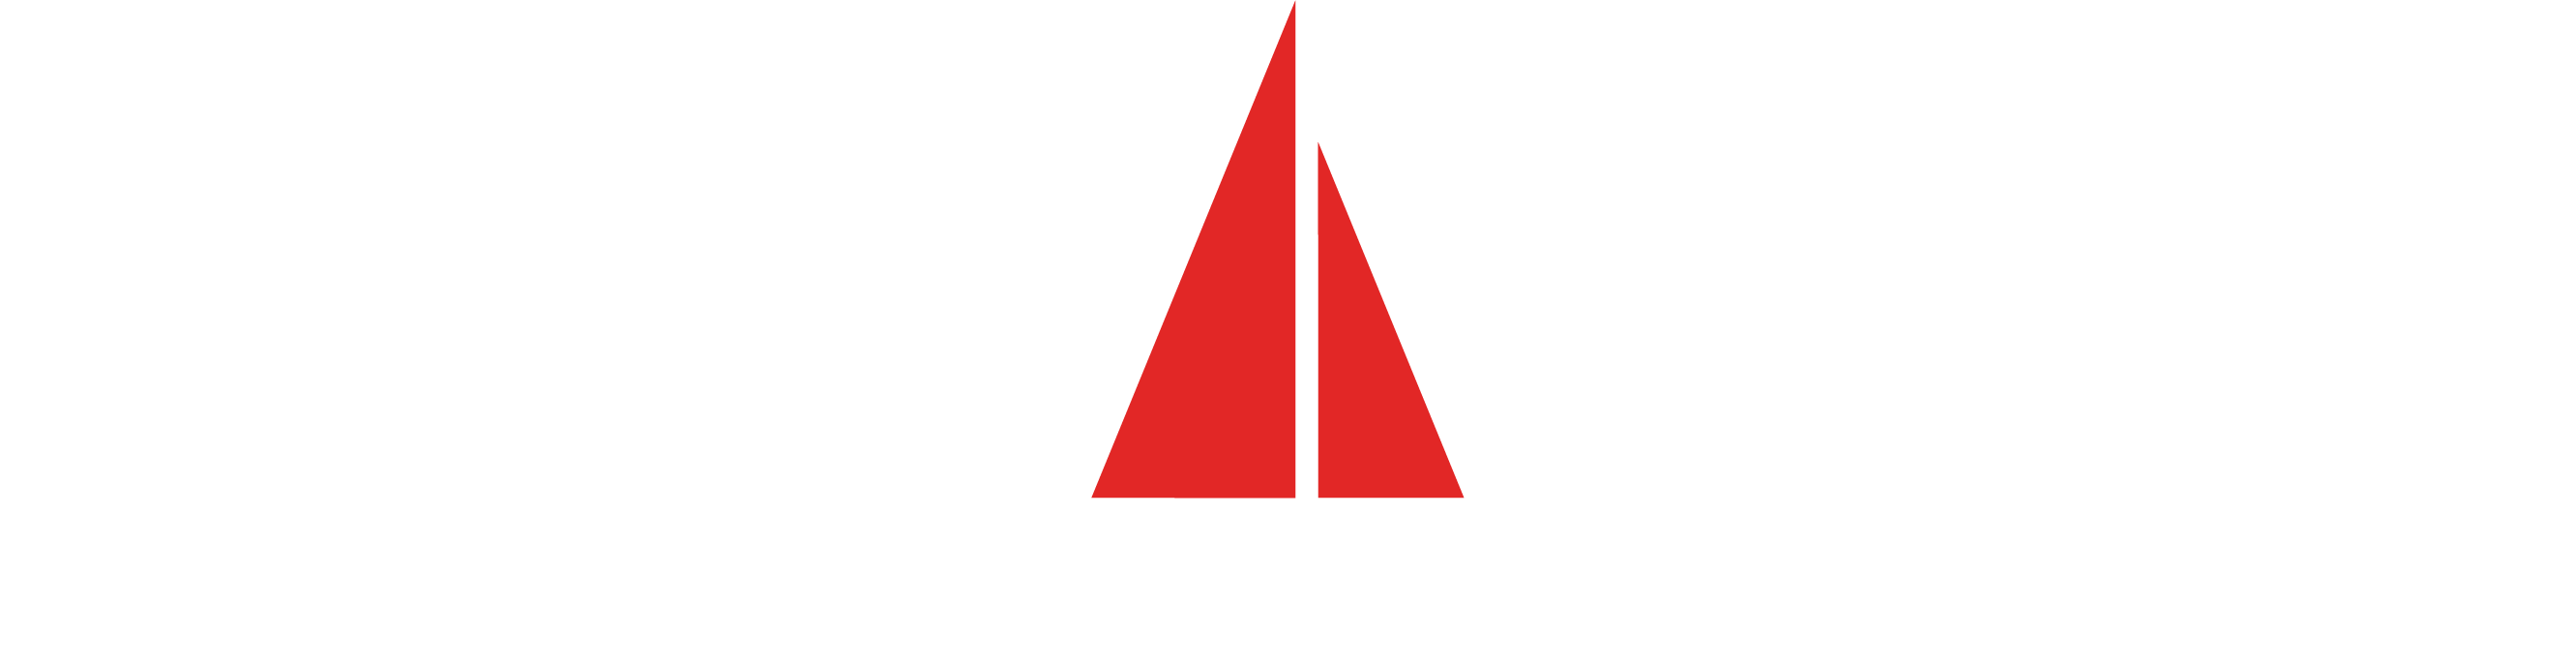 Houston Maritime Education Center and Museum